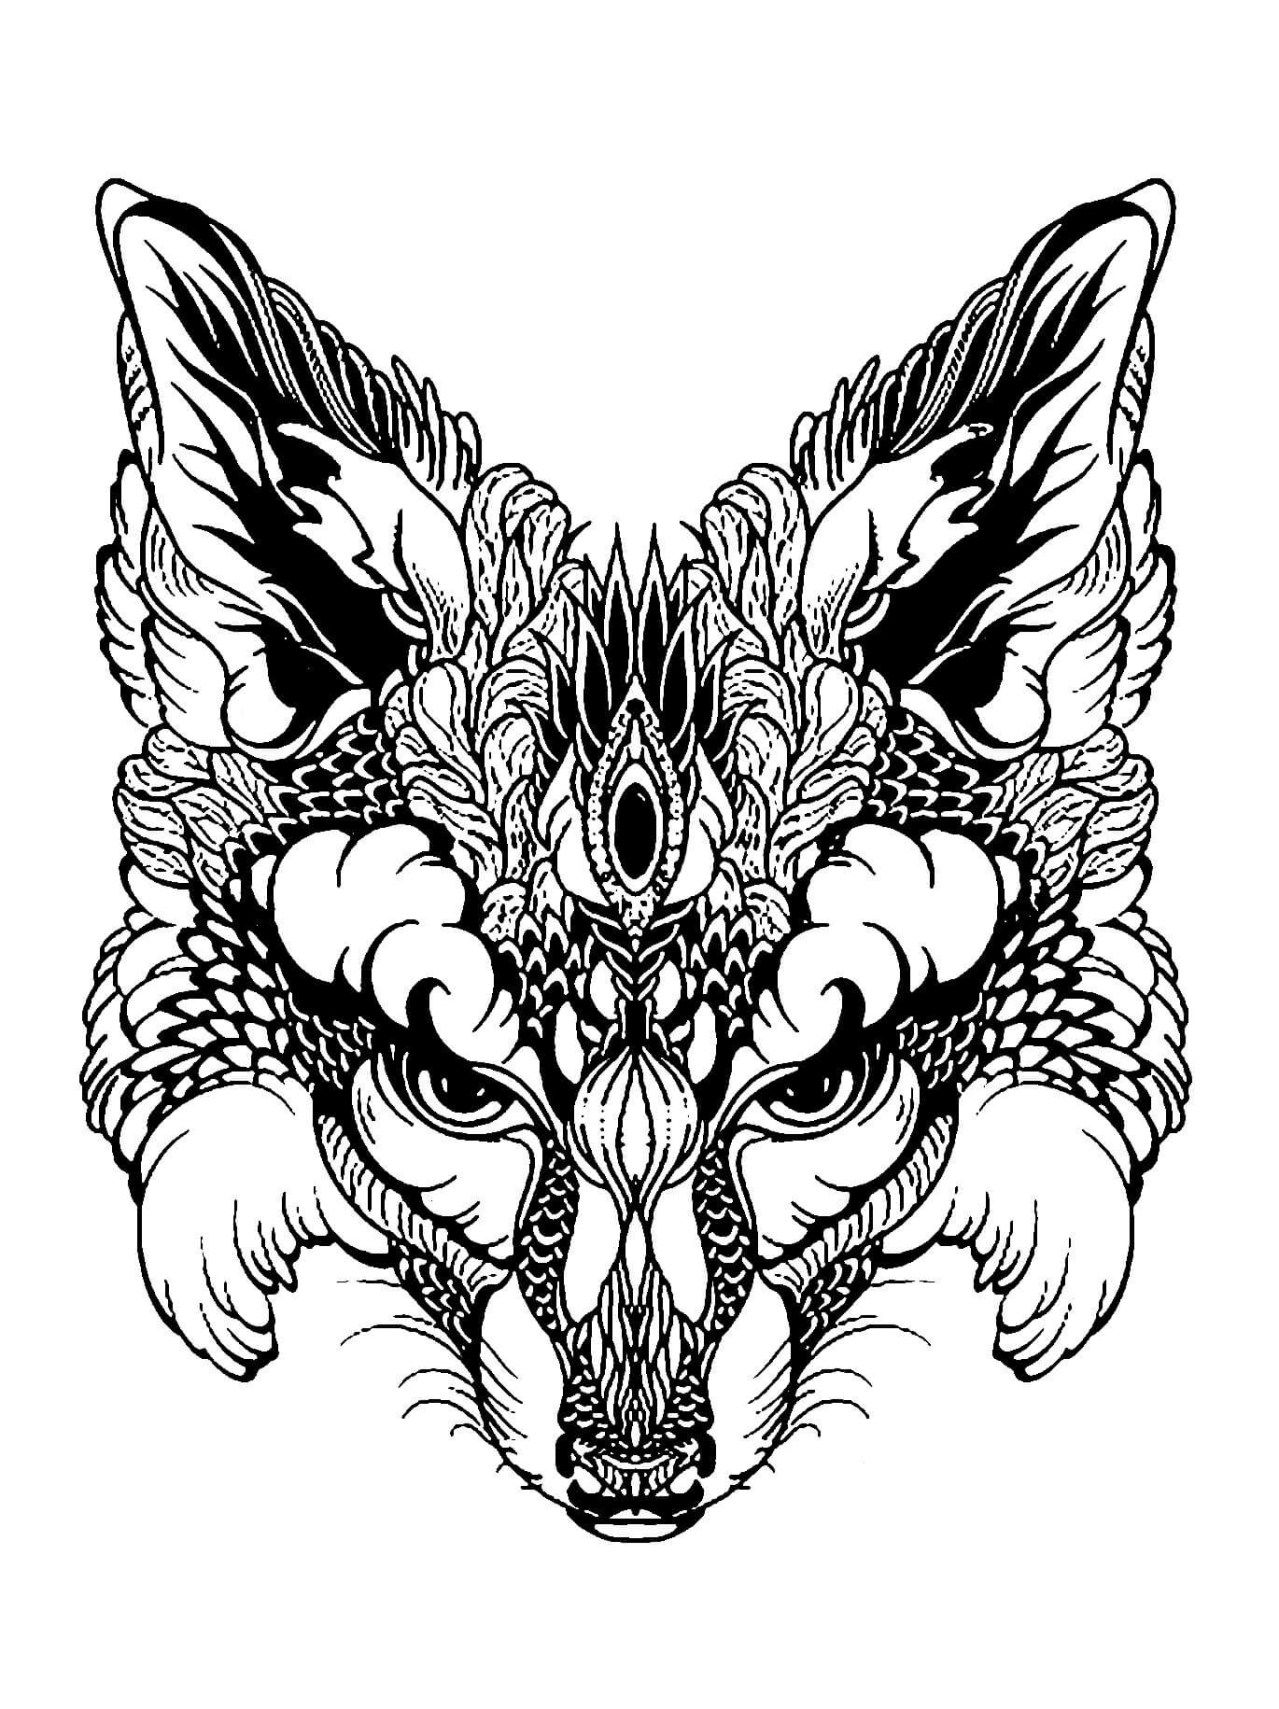 Animal Mandala Coloring Pages Animal Mandala Coloring Pages For Adults Difficult Animals 42 Kids Entitlementtrap Com Fox Coloring Page Mandala Coloring Pages Animal Coloring Pages [ jpg ]